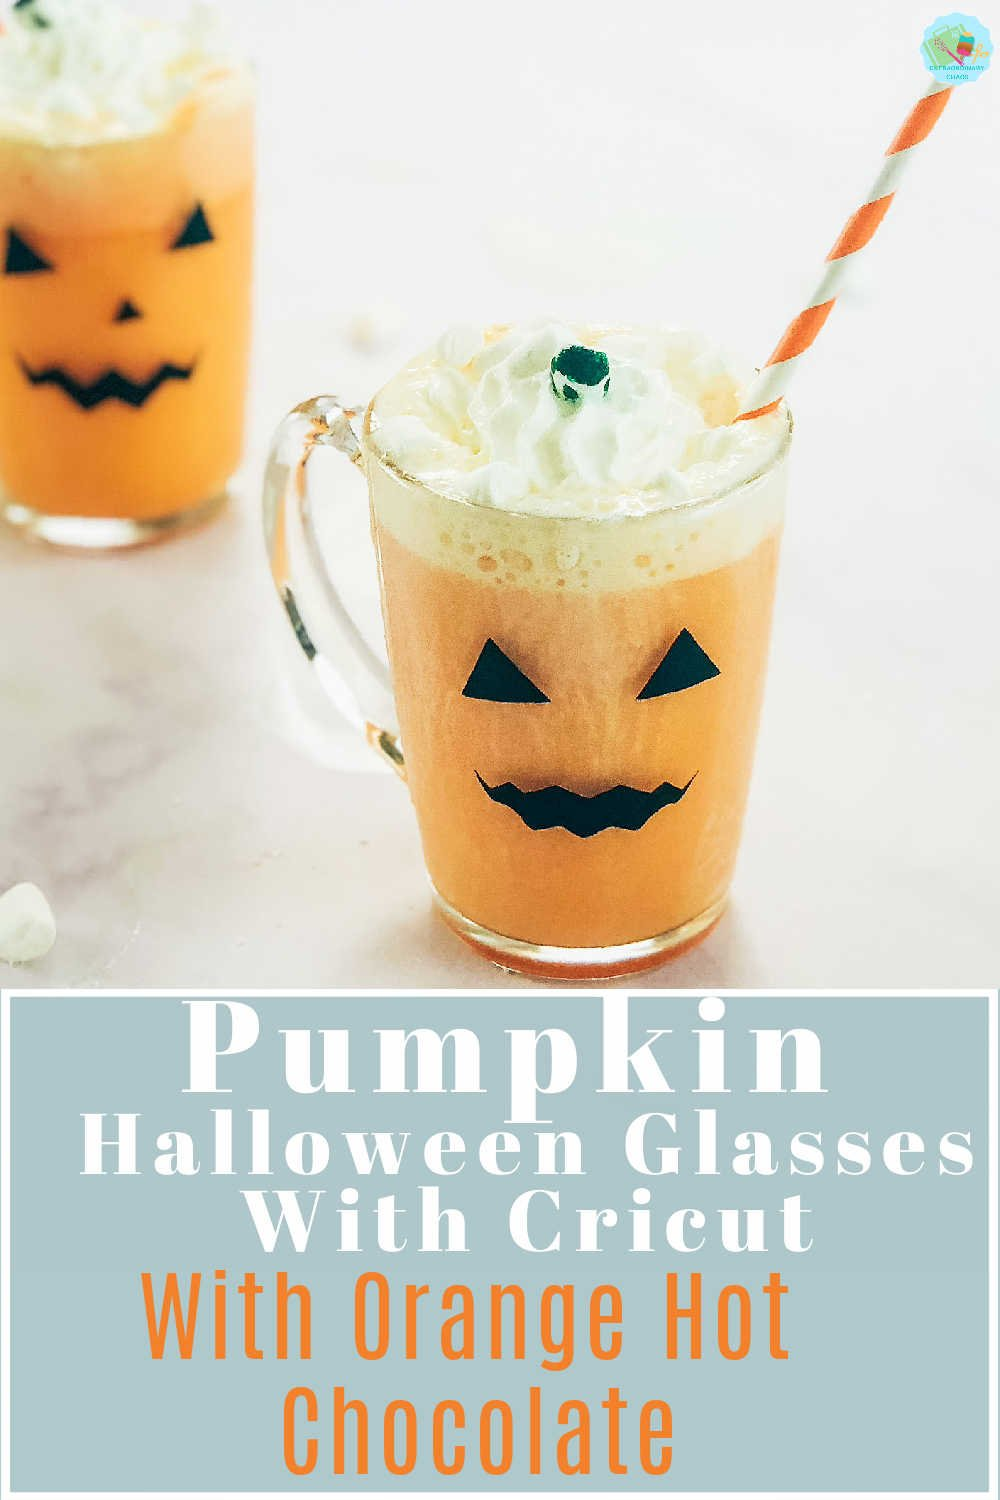 How to make spooky Pumpkin face Halloween Glasses with Cricut Vinyl with Orange hot chocolate topped with cream